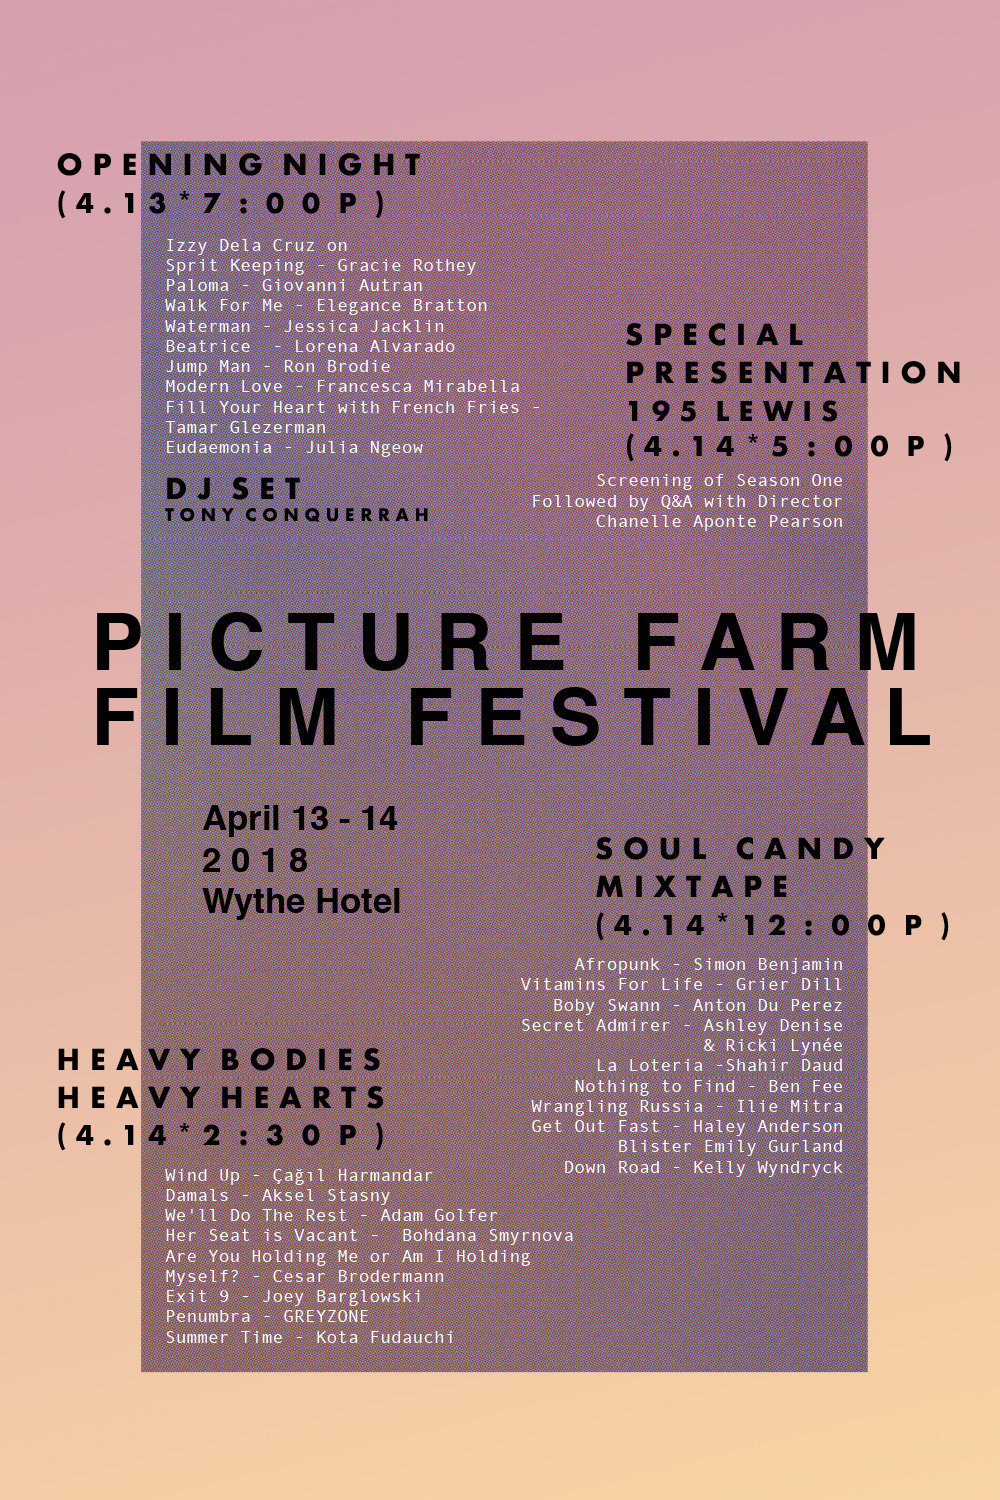 Picture Farm Film Festival 2018 Lineup w/ SECRET ADMIRER!